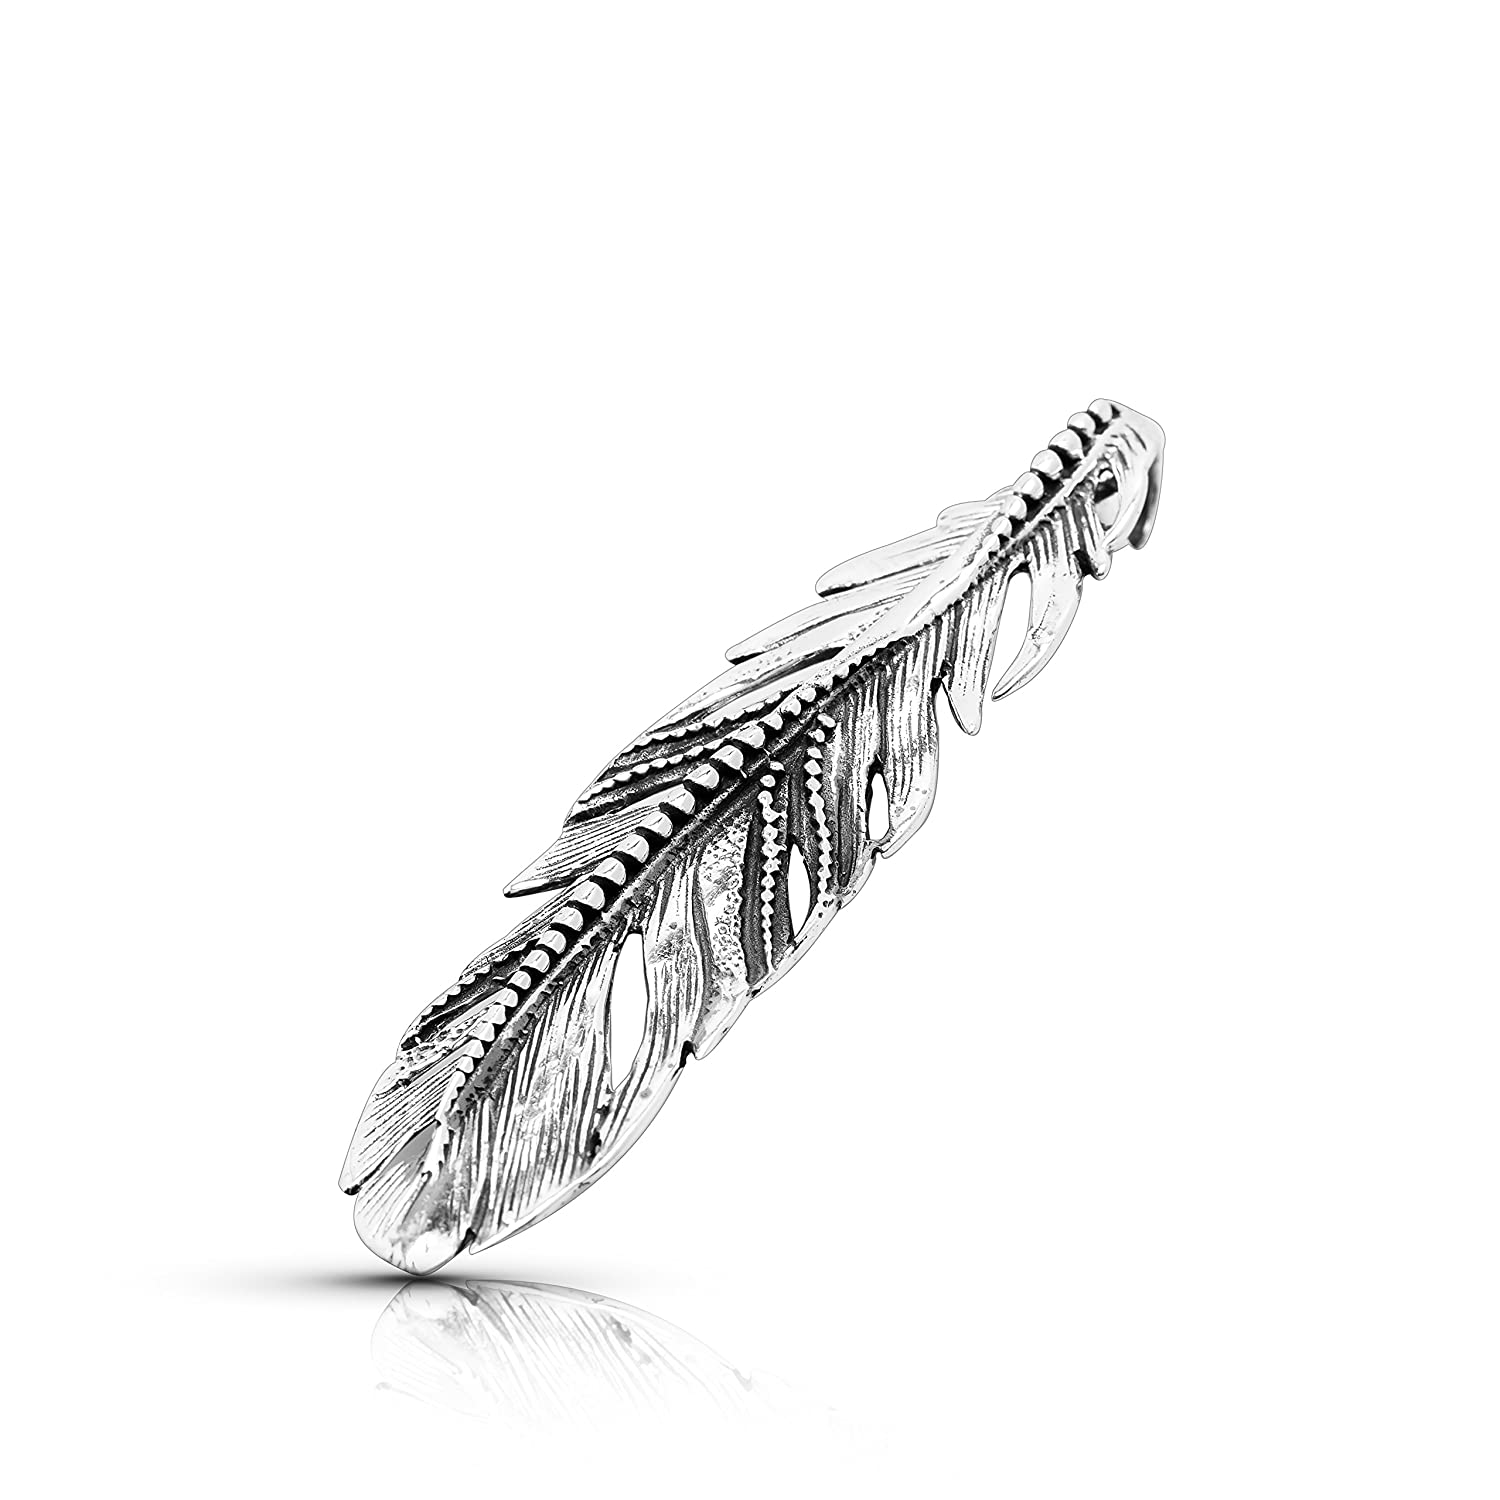 Big Feather Pendant 925 Sterling Silver Native American Tribal Bohemian Jewelry